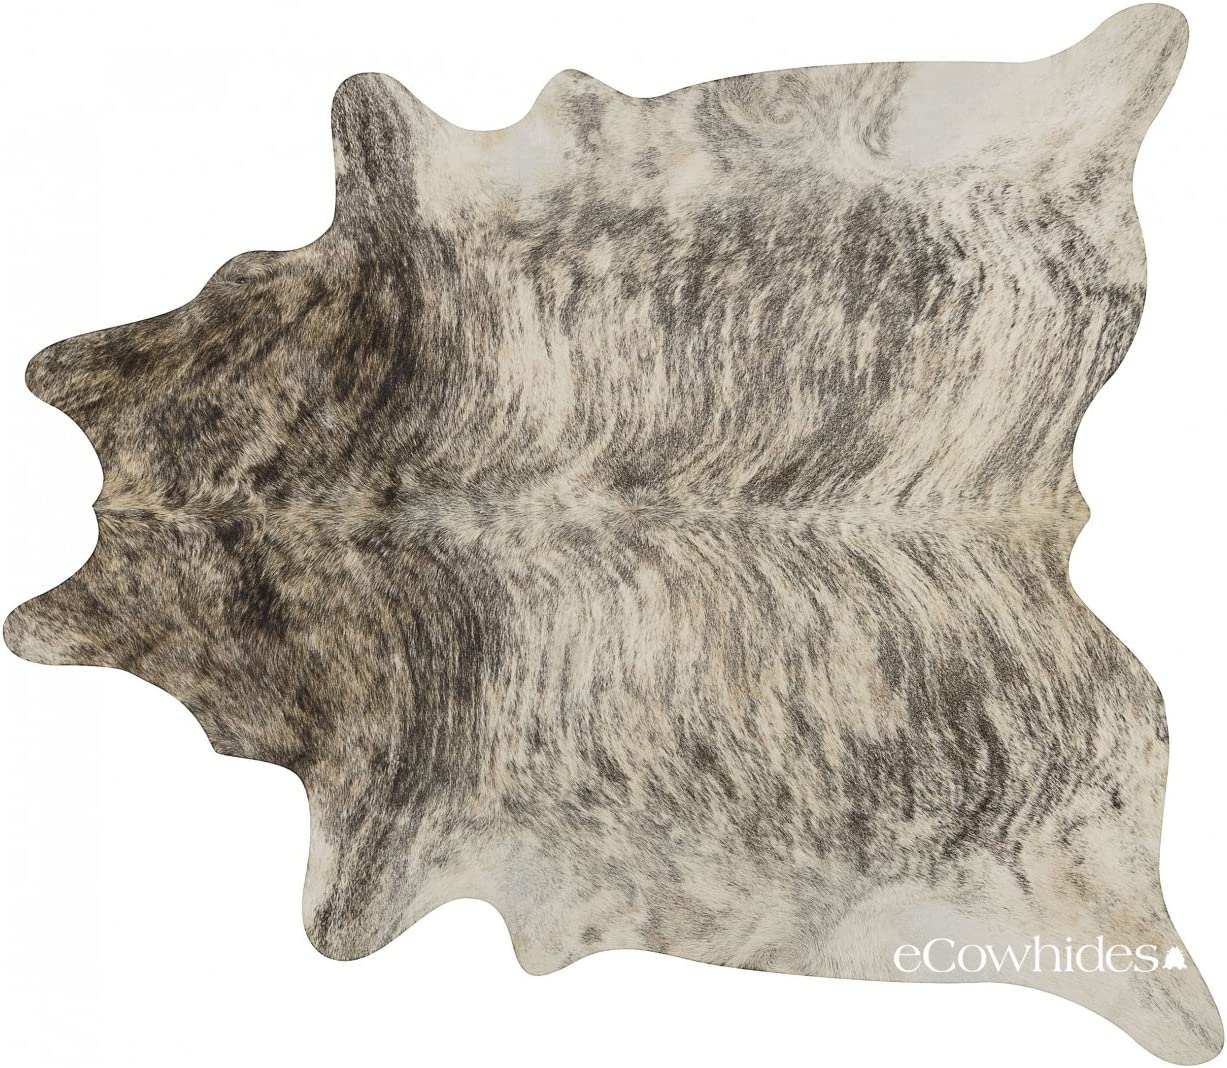 eCowhides Light Brindle Brazilian Cowhide Area Rug, Cowskin Leather Hide for Home Living Room XXL 8 x 7 ft